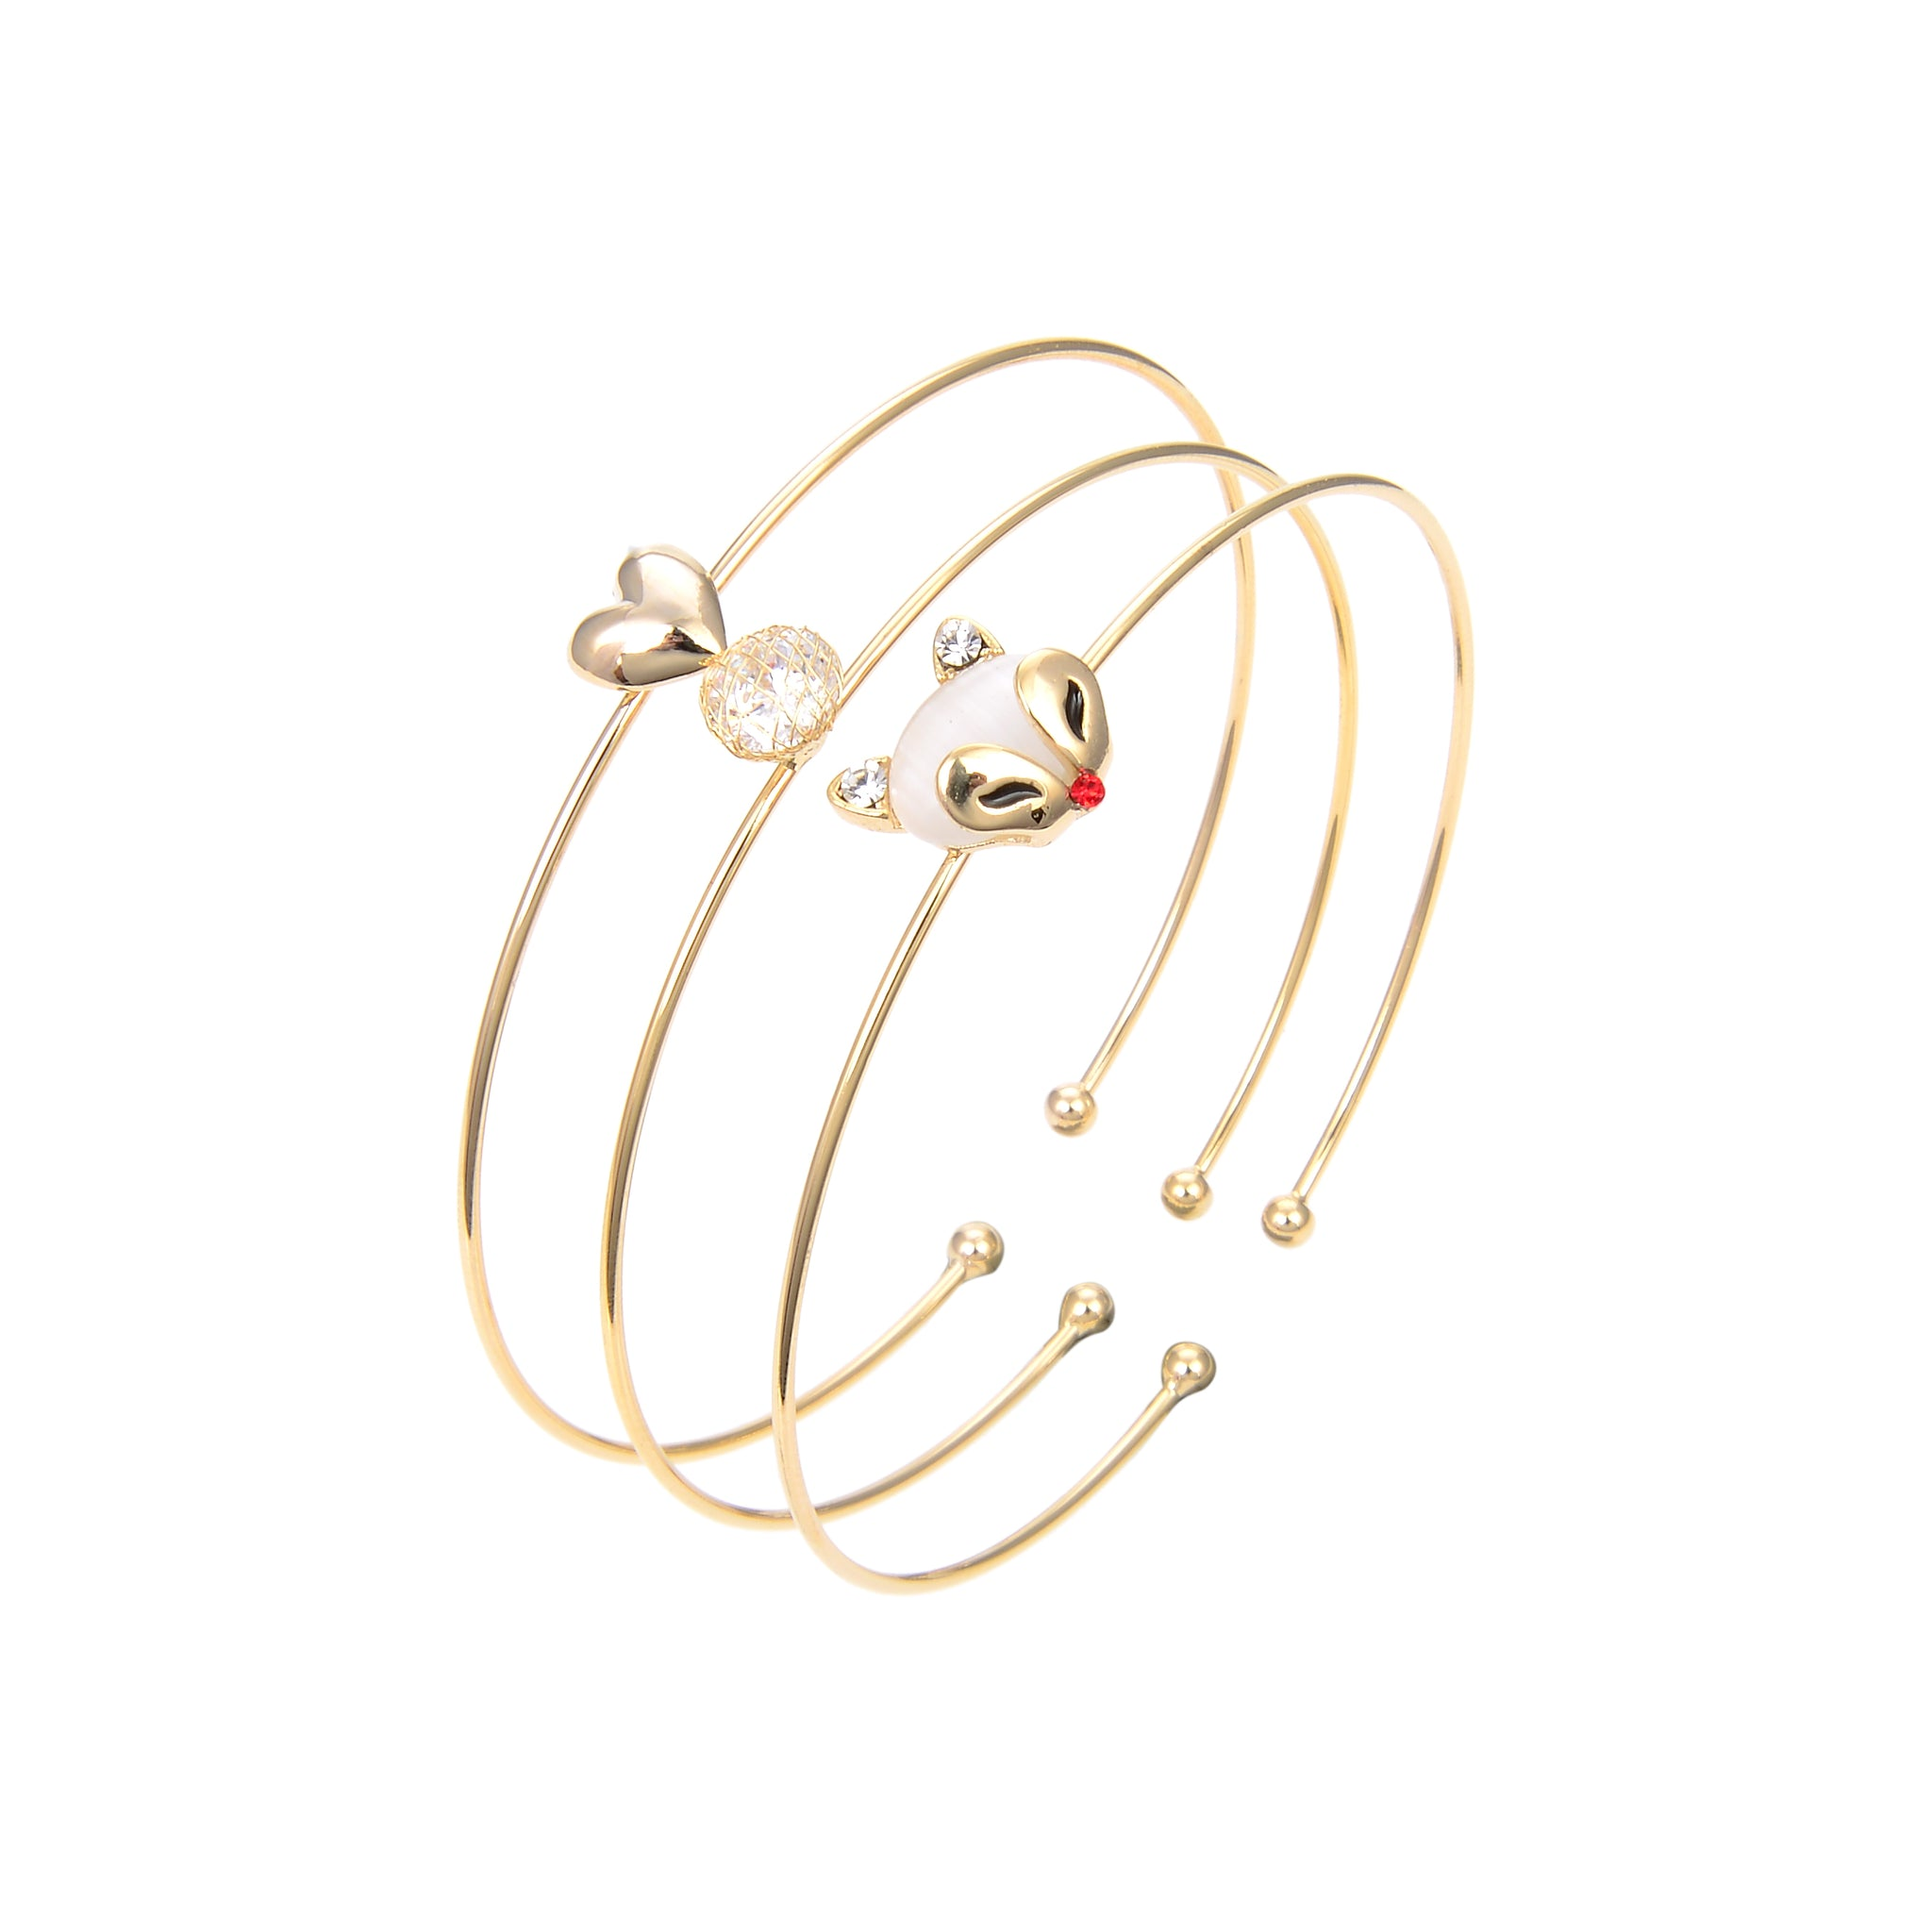 Gold Plated CZ Cubic Zirconia Bangle Bracelet, CZ Adjustable Bangle Bracelet